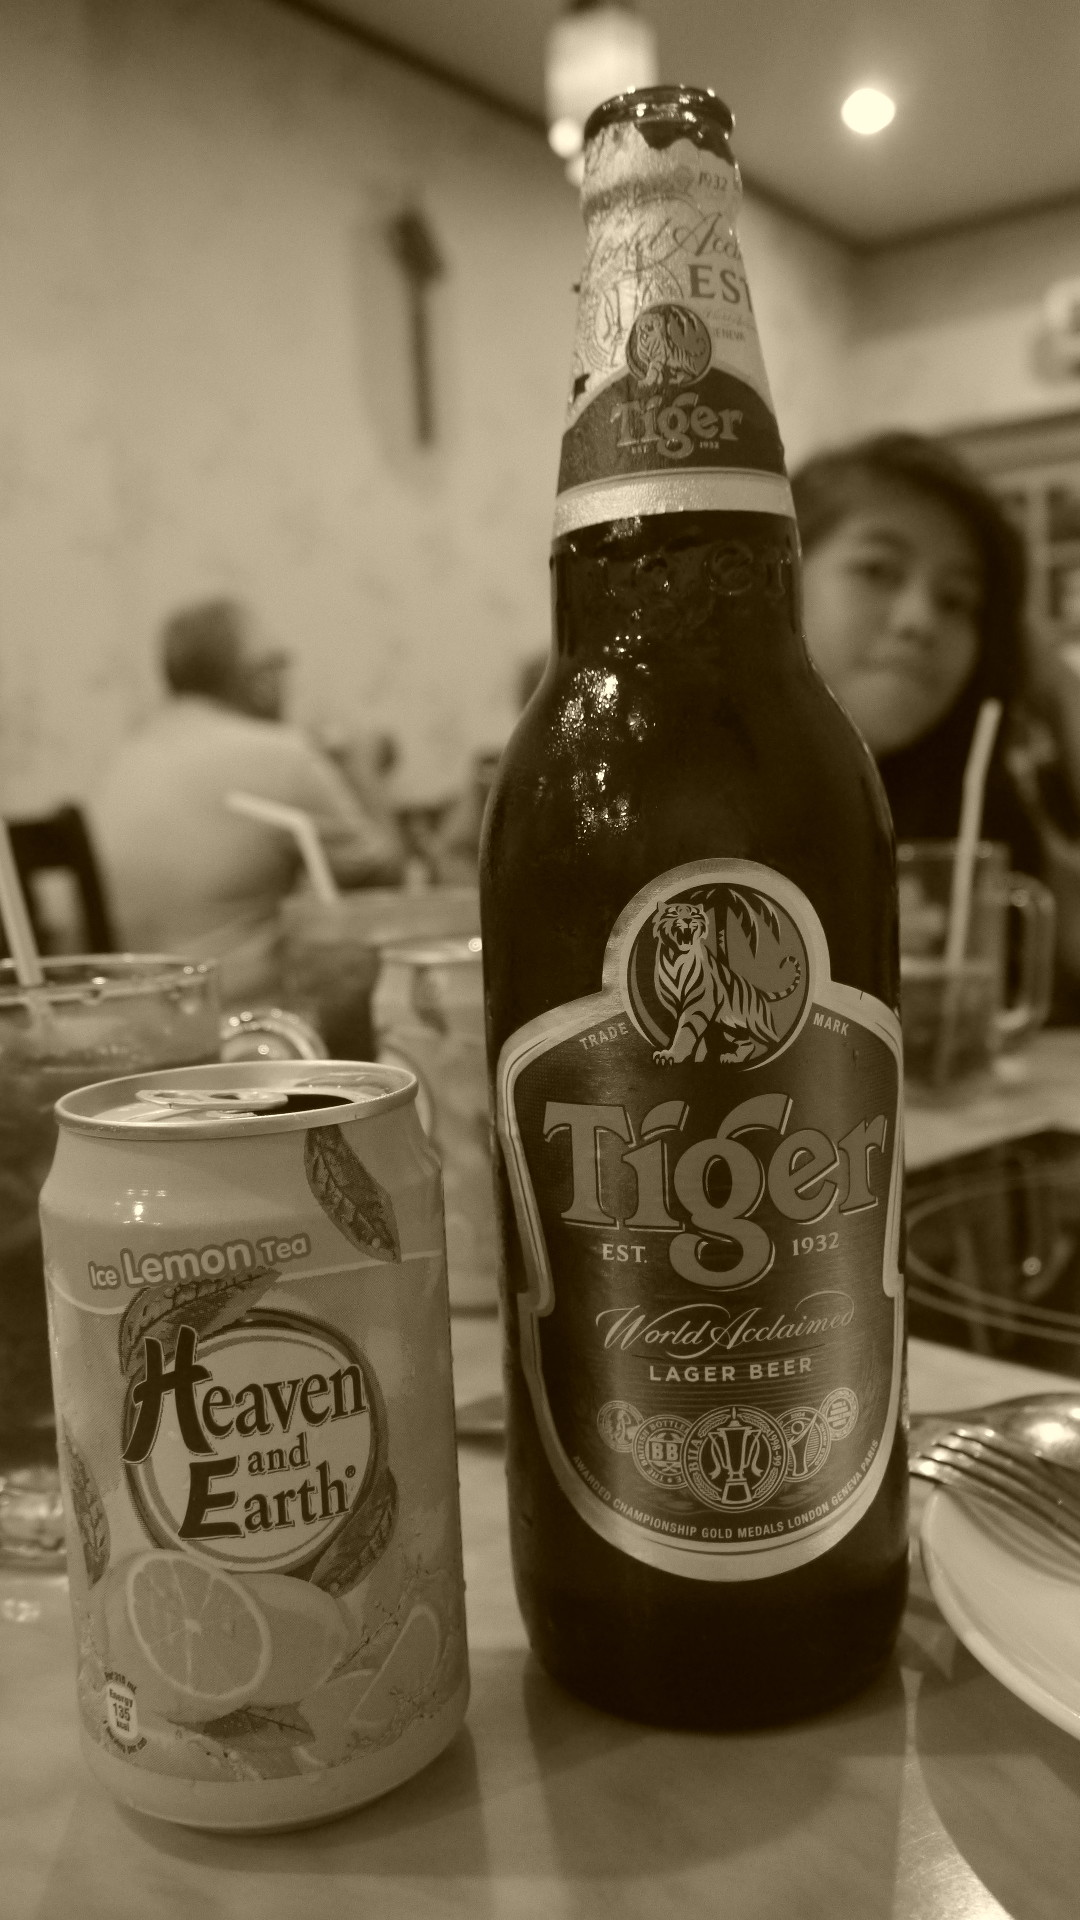 Our Singapore trip will not be complete without having a taste of Iced Lemon Tea and Tiger Beer!  Don't worry the kids just had the iced tea!